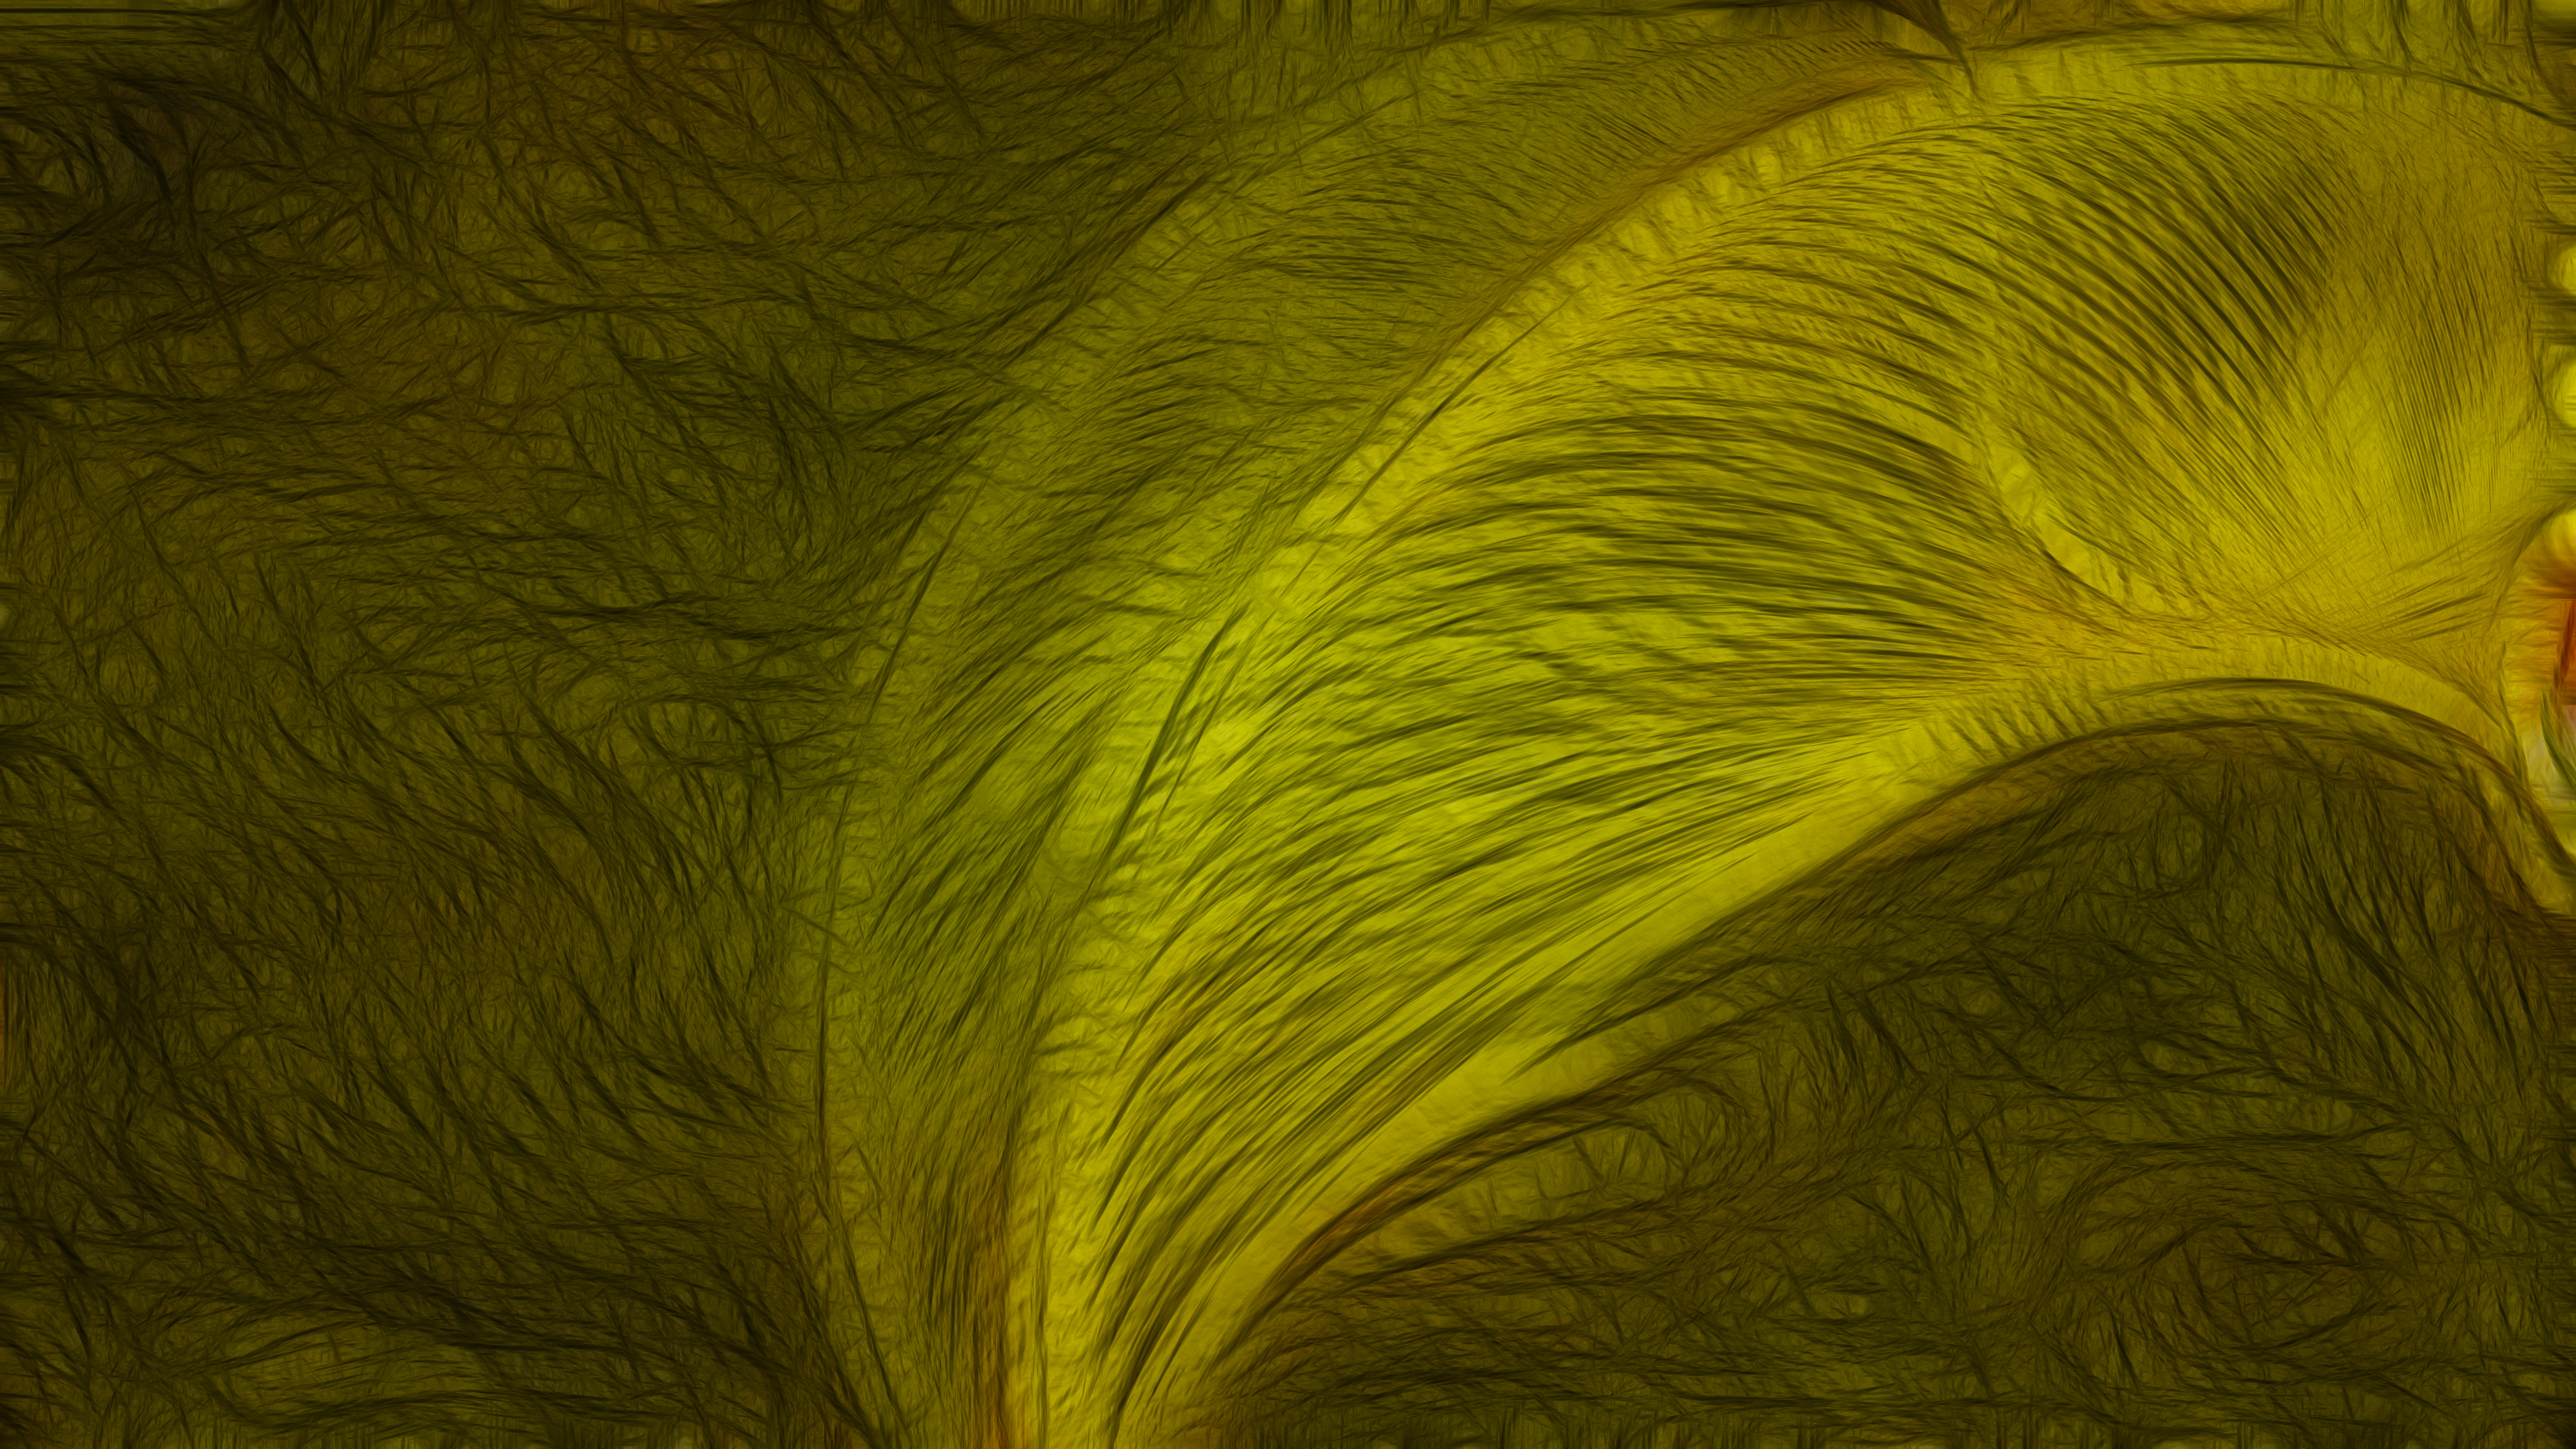 Black and Yellow Texture Background Image